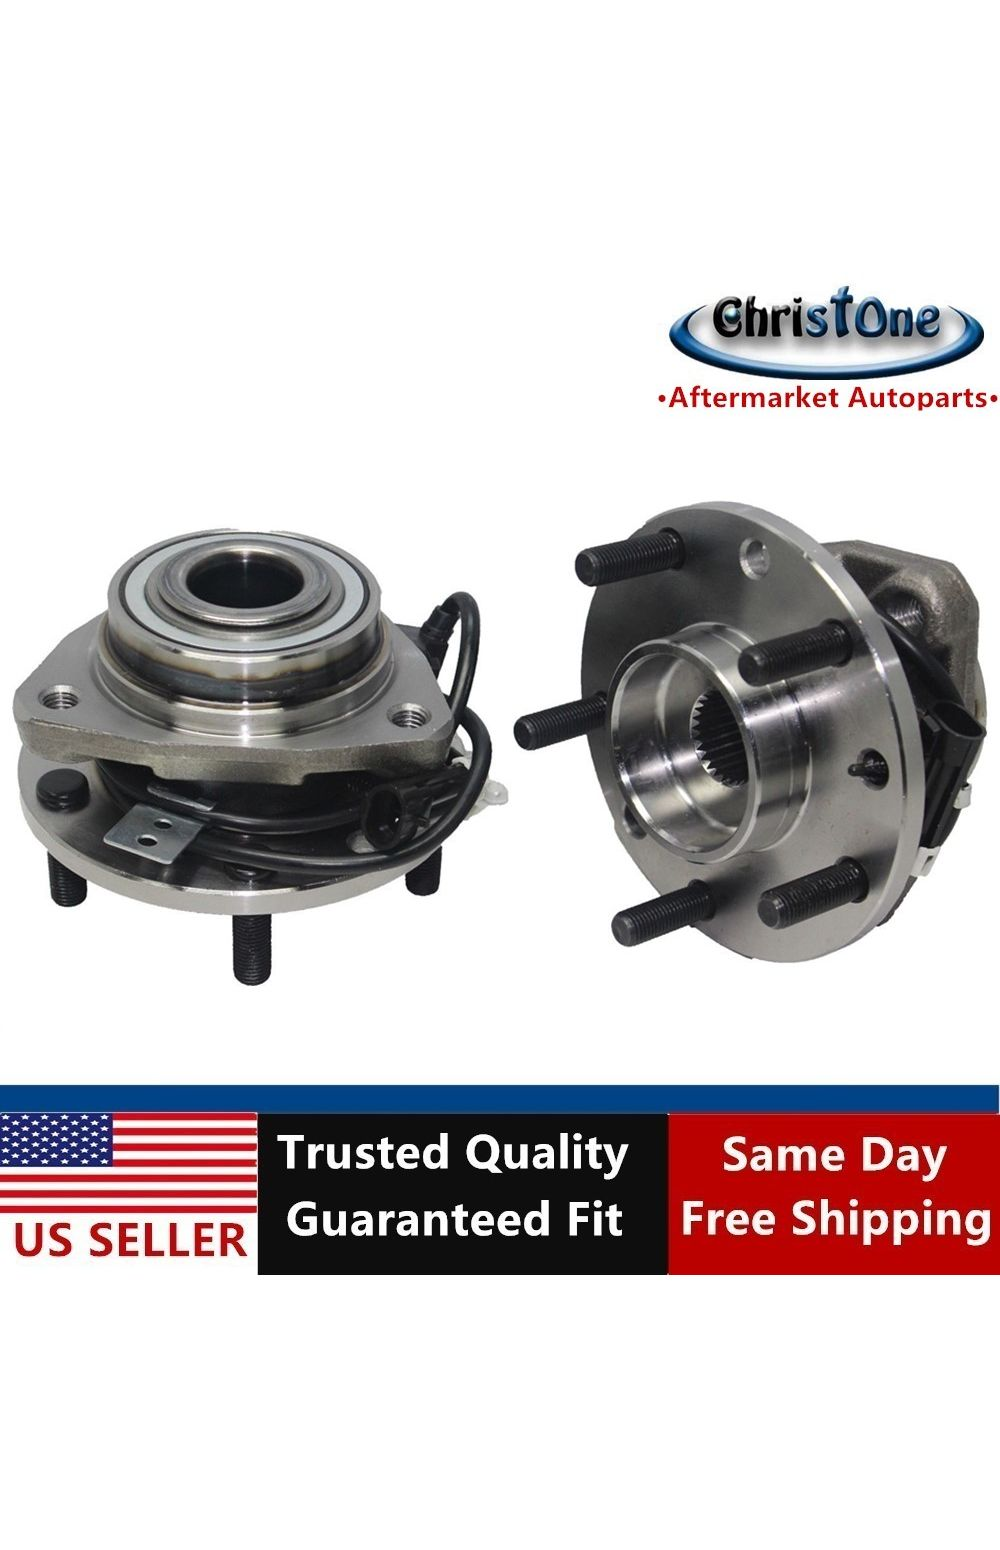 2000 fits GMC Jimmy Front Wheel Bearing and Hub Assembly Note: 4WD, AWD, 4-Wheel ABS One Bearing Included with Two Years Warranty